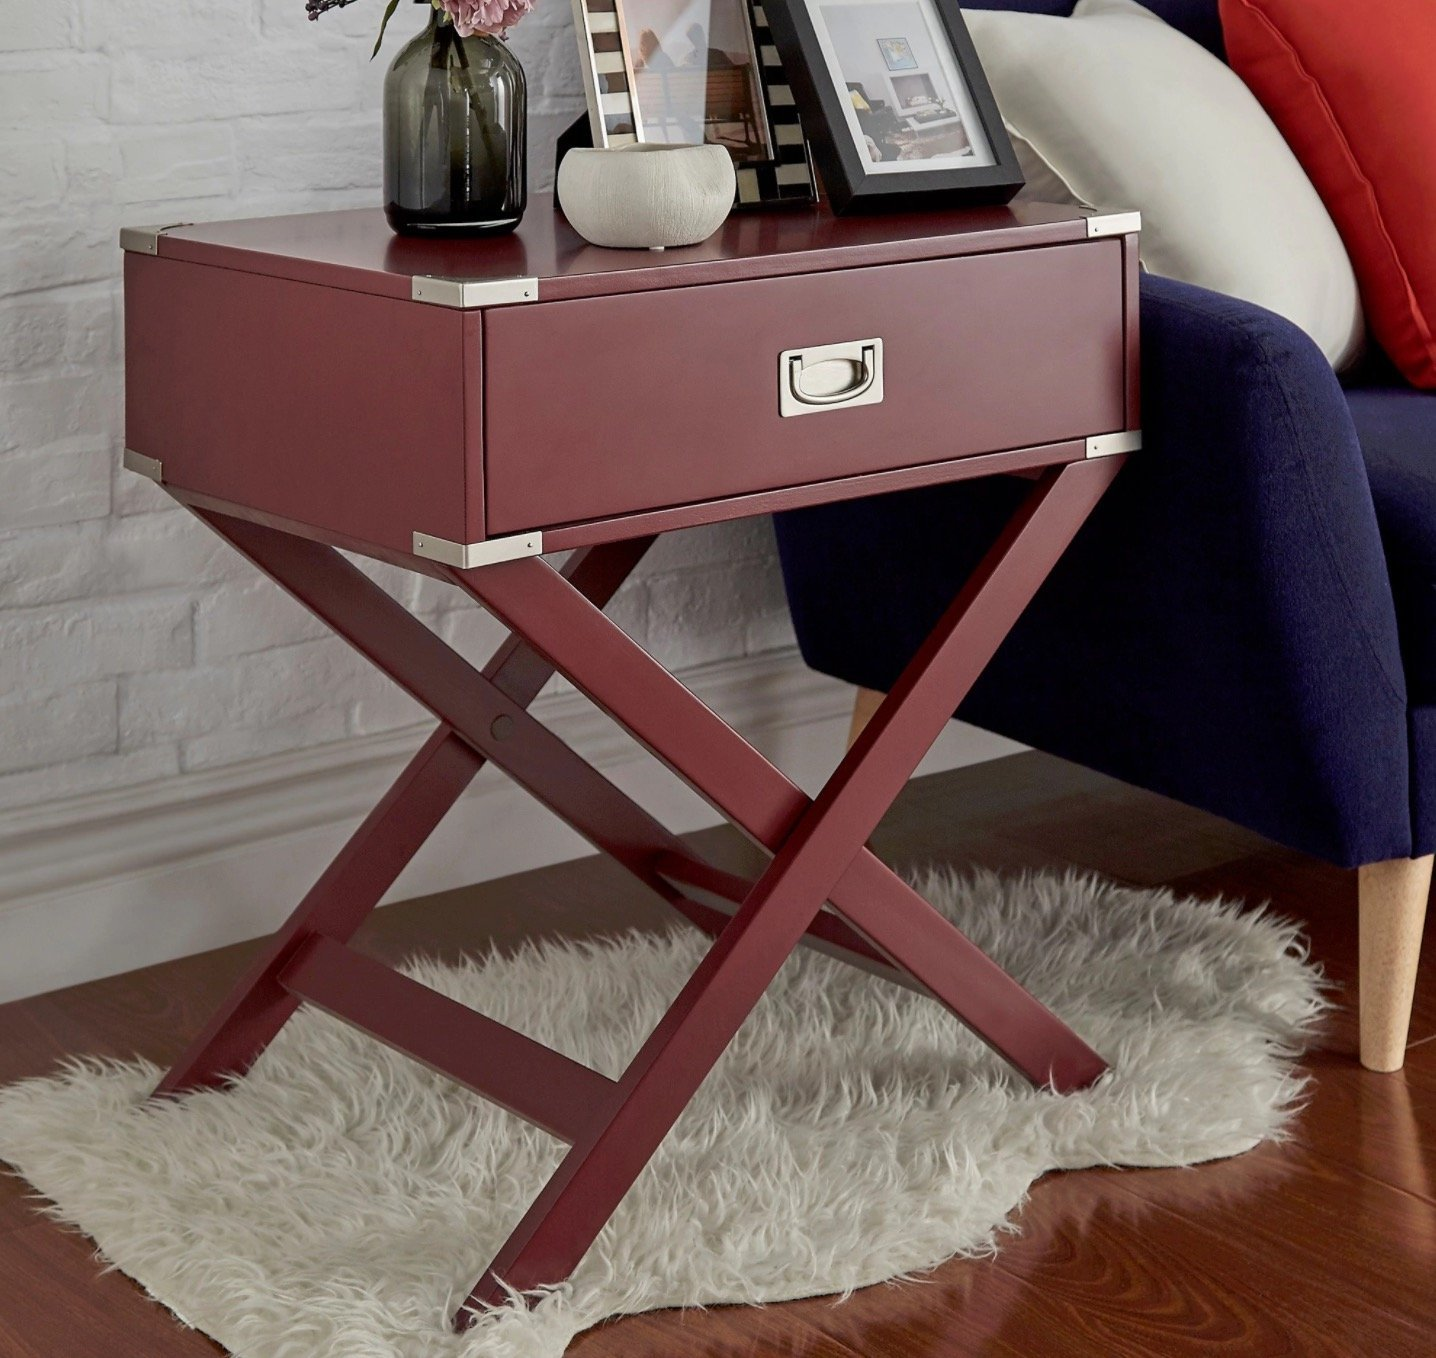 red accent table find line base get quotations wood tawny port black sofa unusual end tables chest designs diy tan plastic covers tile and floor transition room essentials white